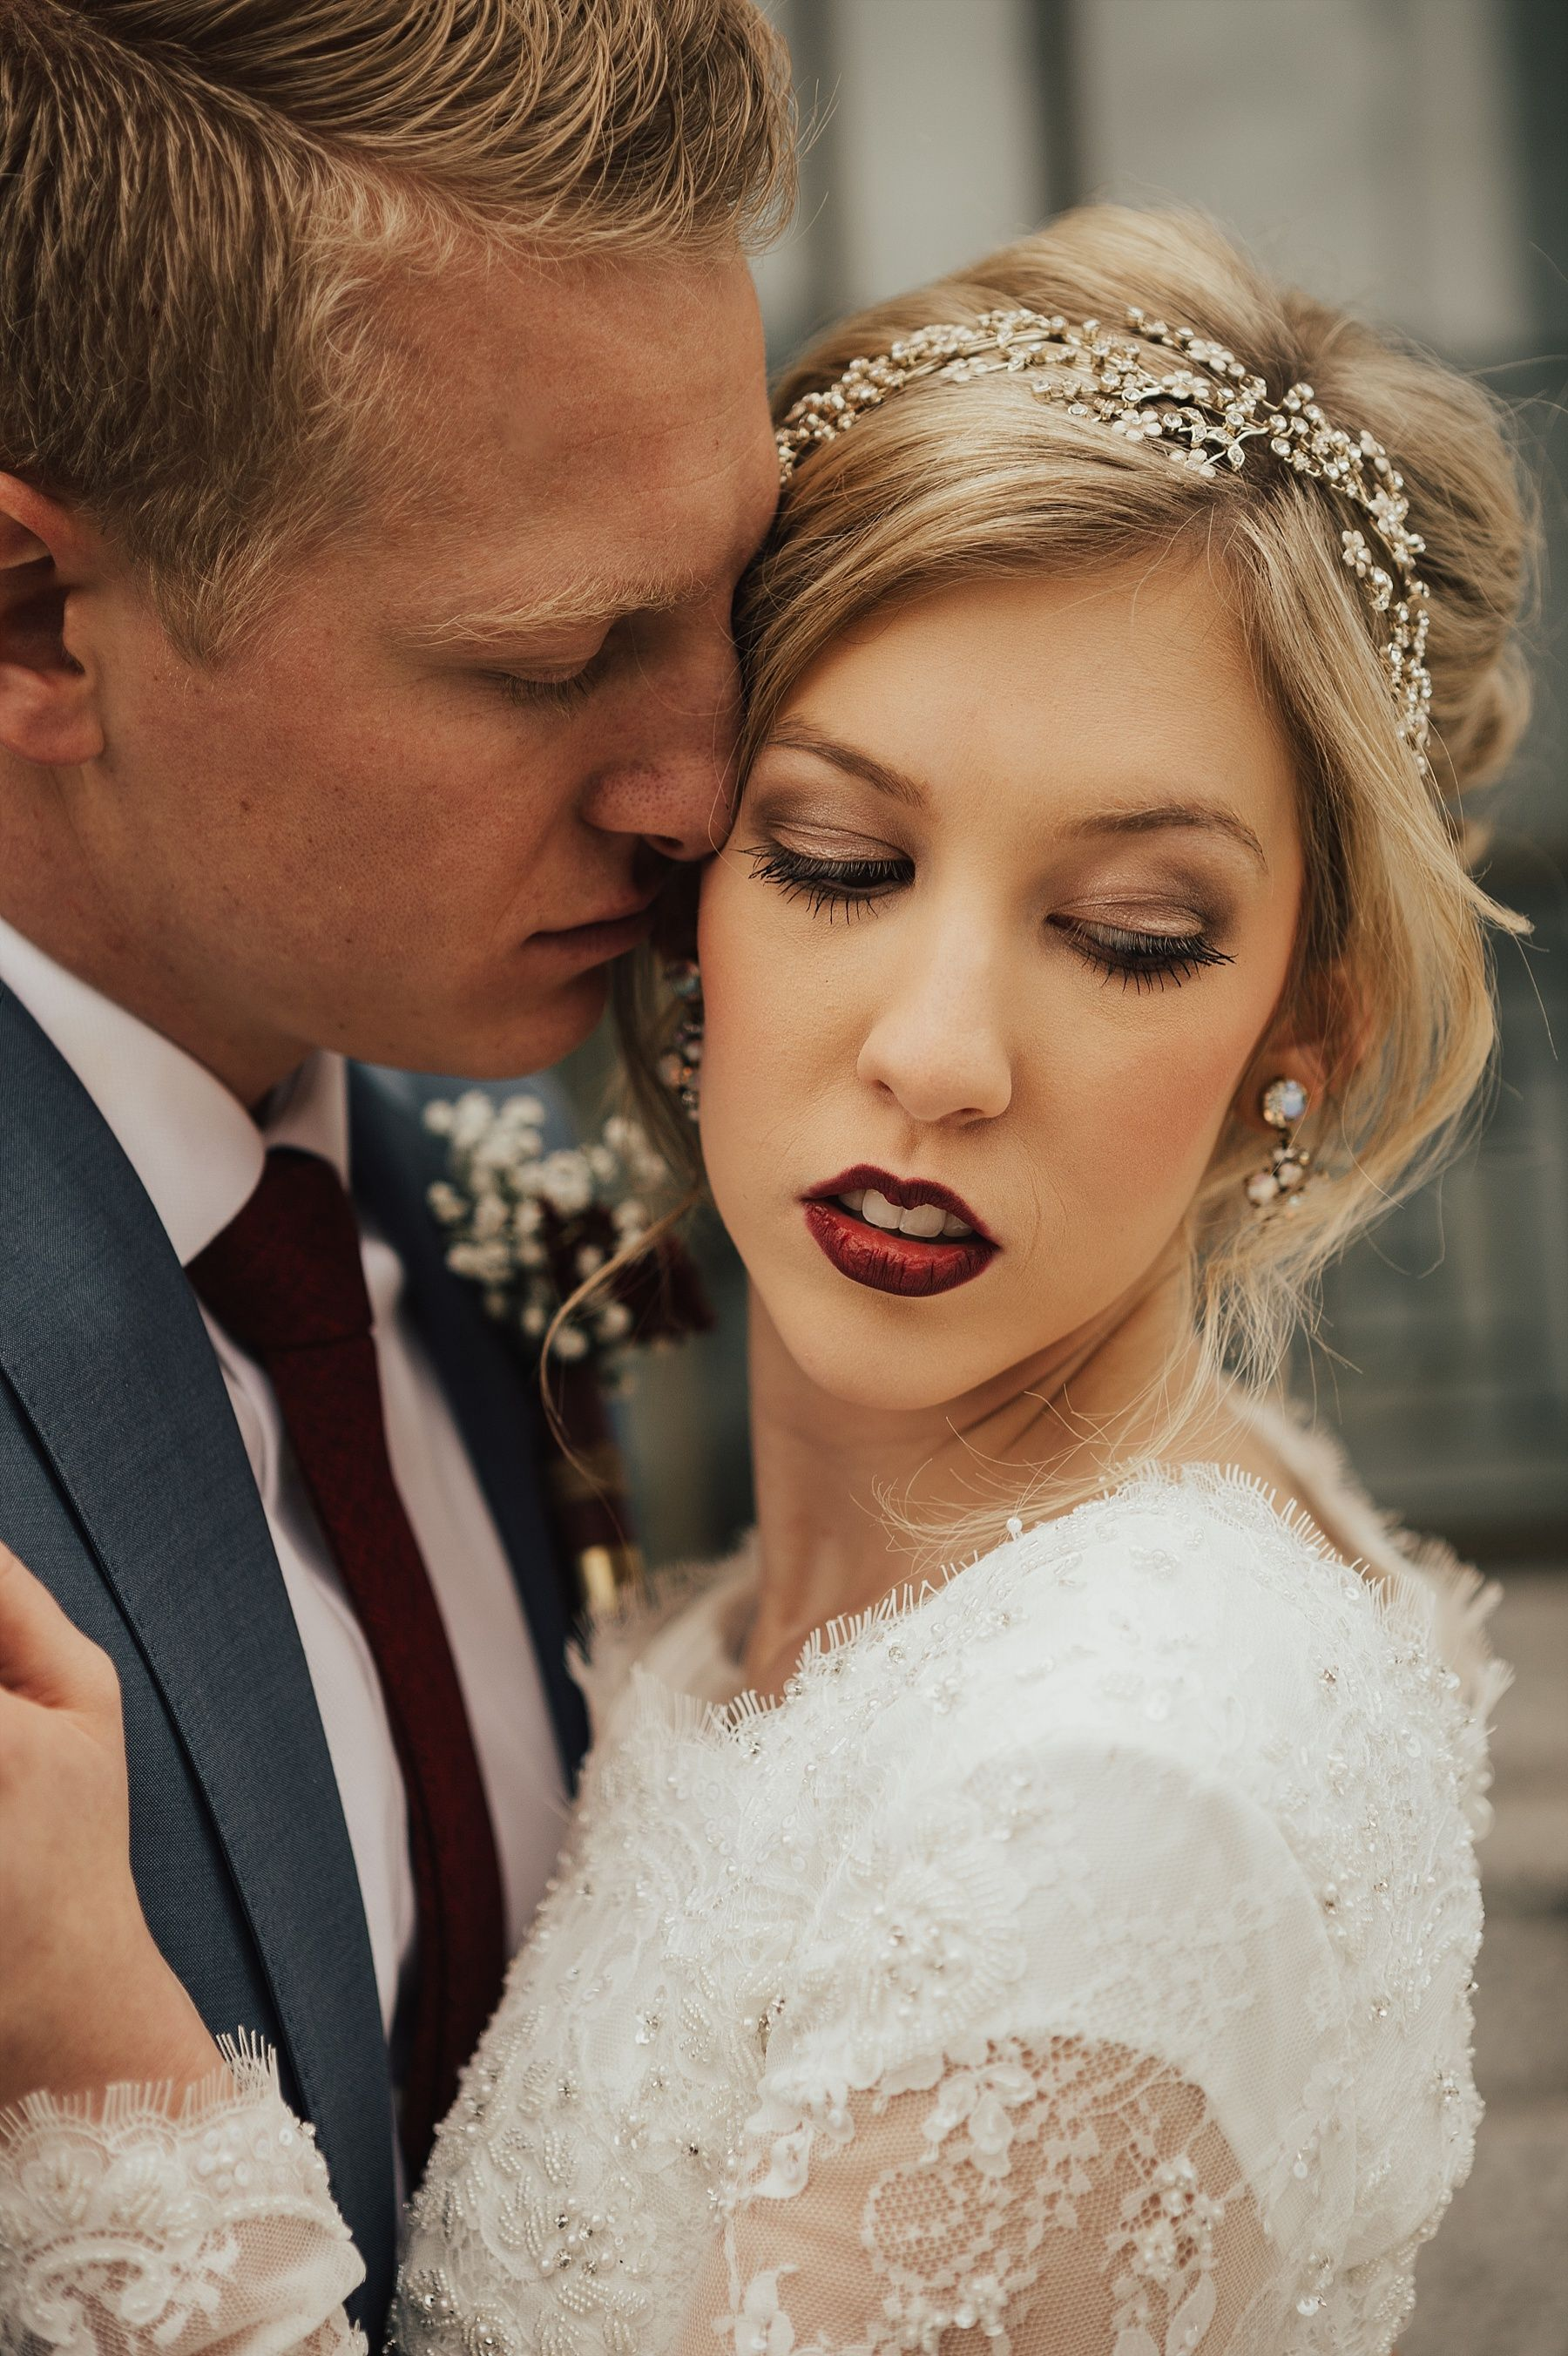 Utah Winter Wedding | Kahaia Chantal Photography | Draper Temple Joseph Smith Memorial Building | Cache Valley Photographer | Wedding Photographer Utah